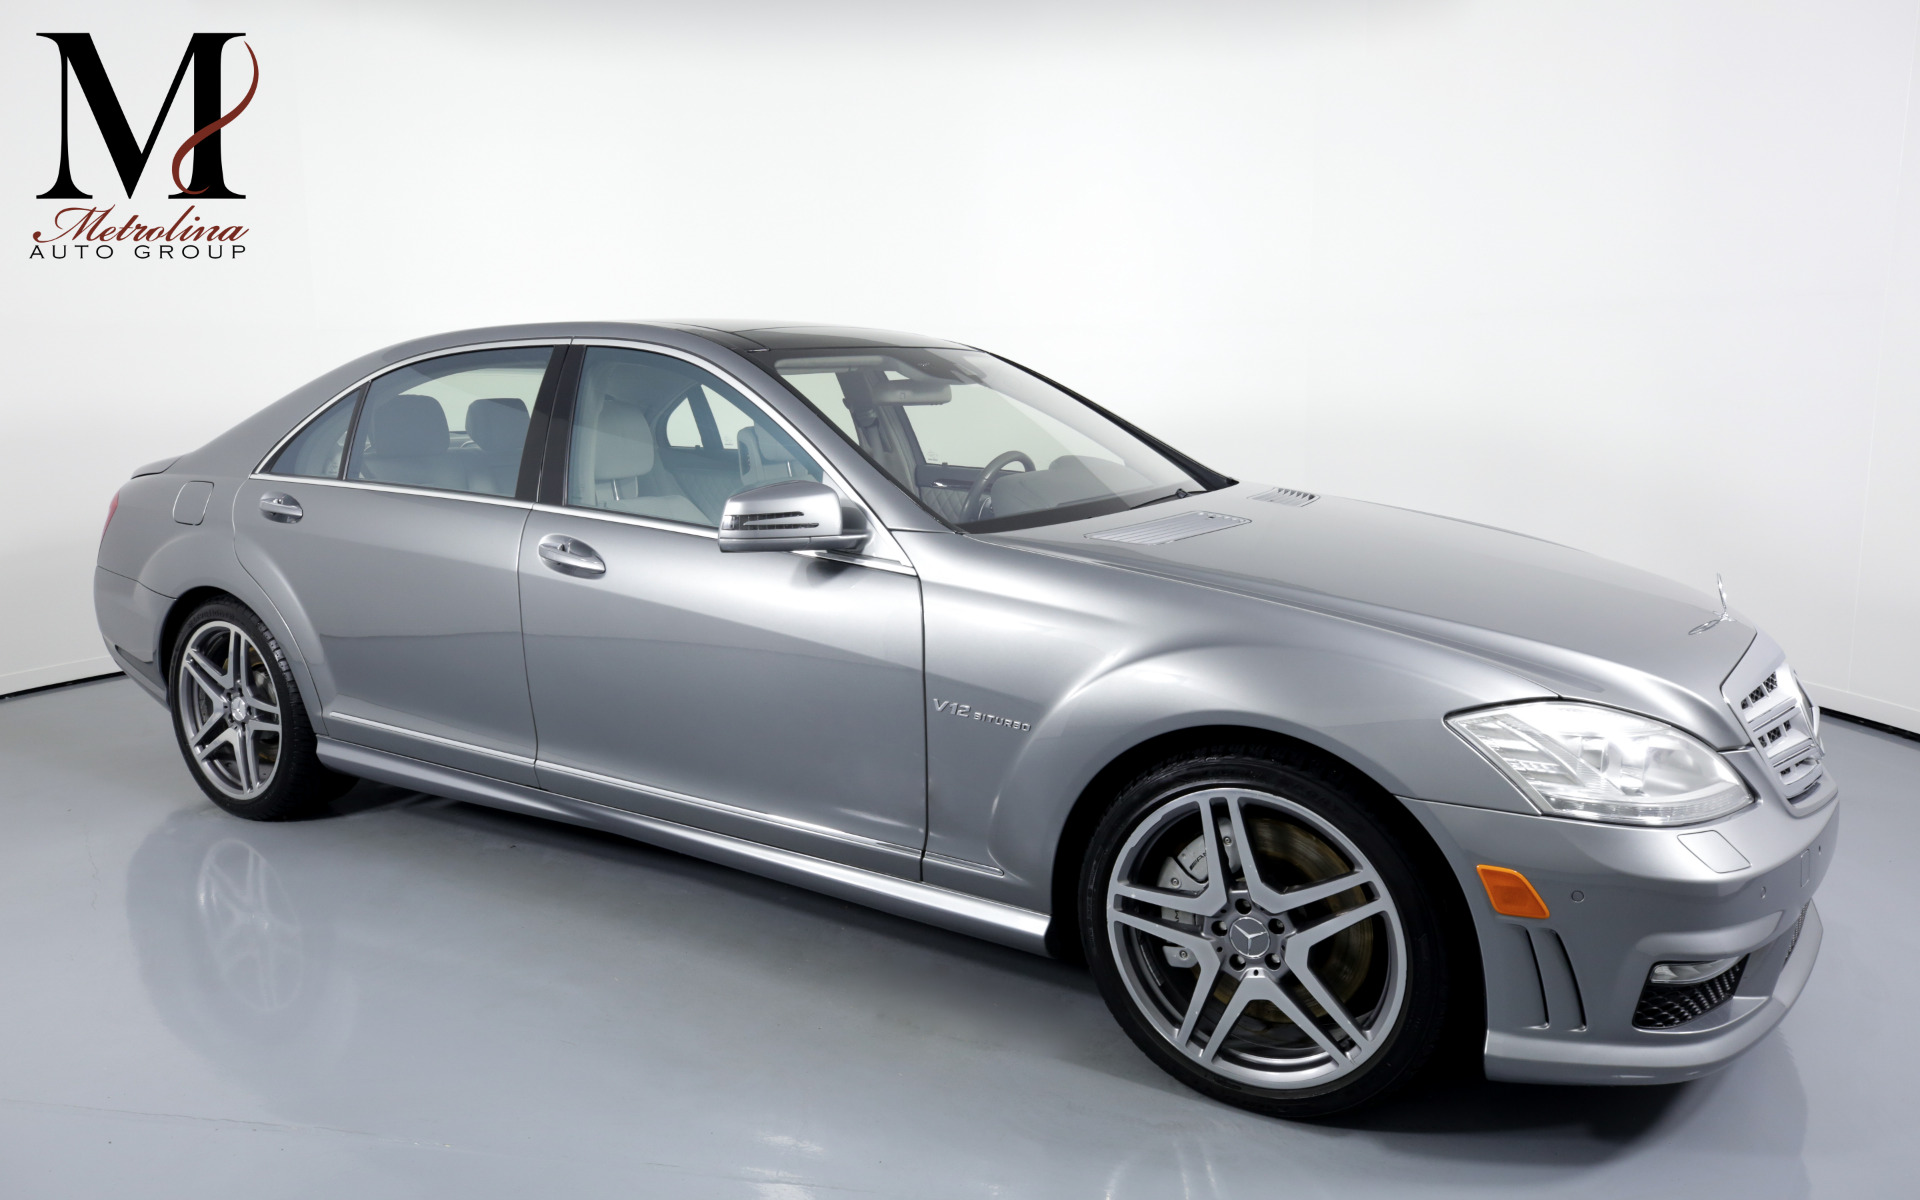 Used 2010 Mercedes-Benz S-Class S 65 AMG for sale Sold at Metrolina Auto Group in Charlotte NC 28217 - 1